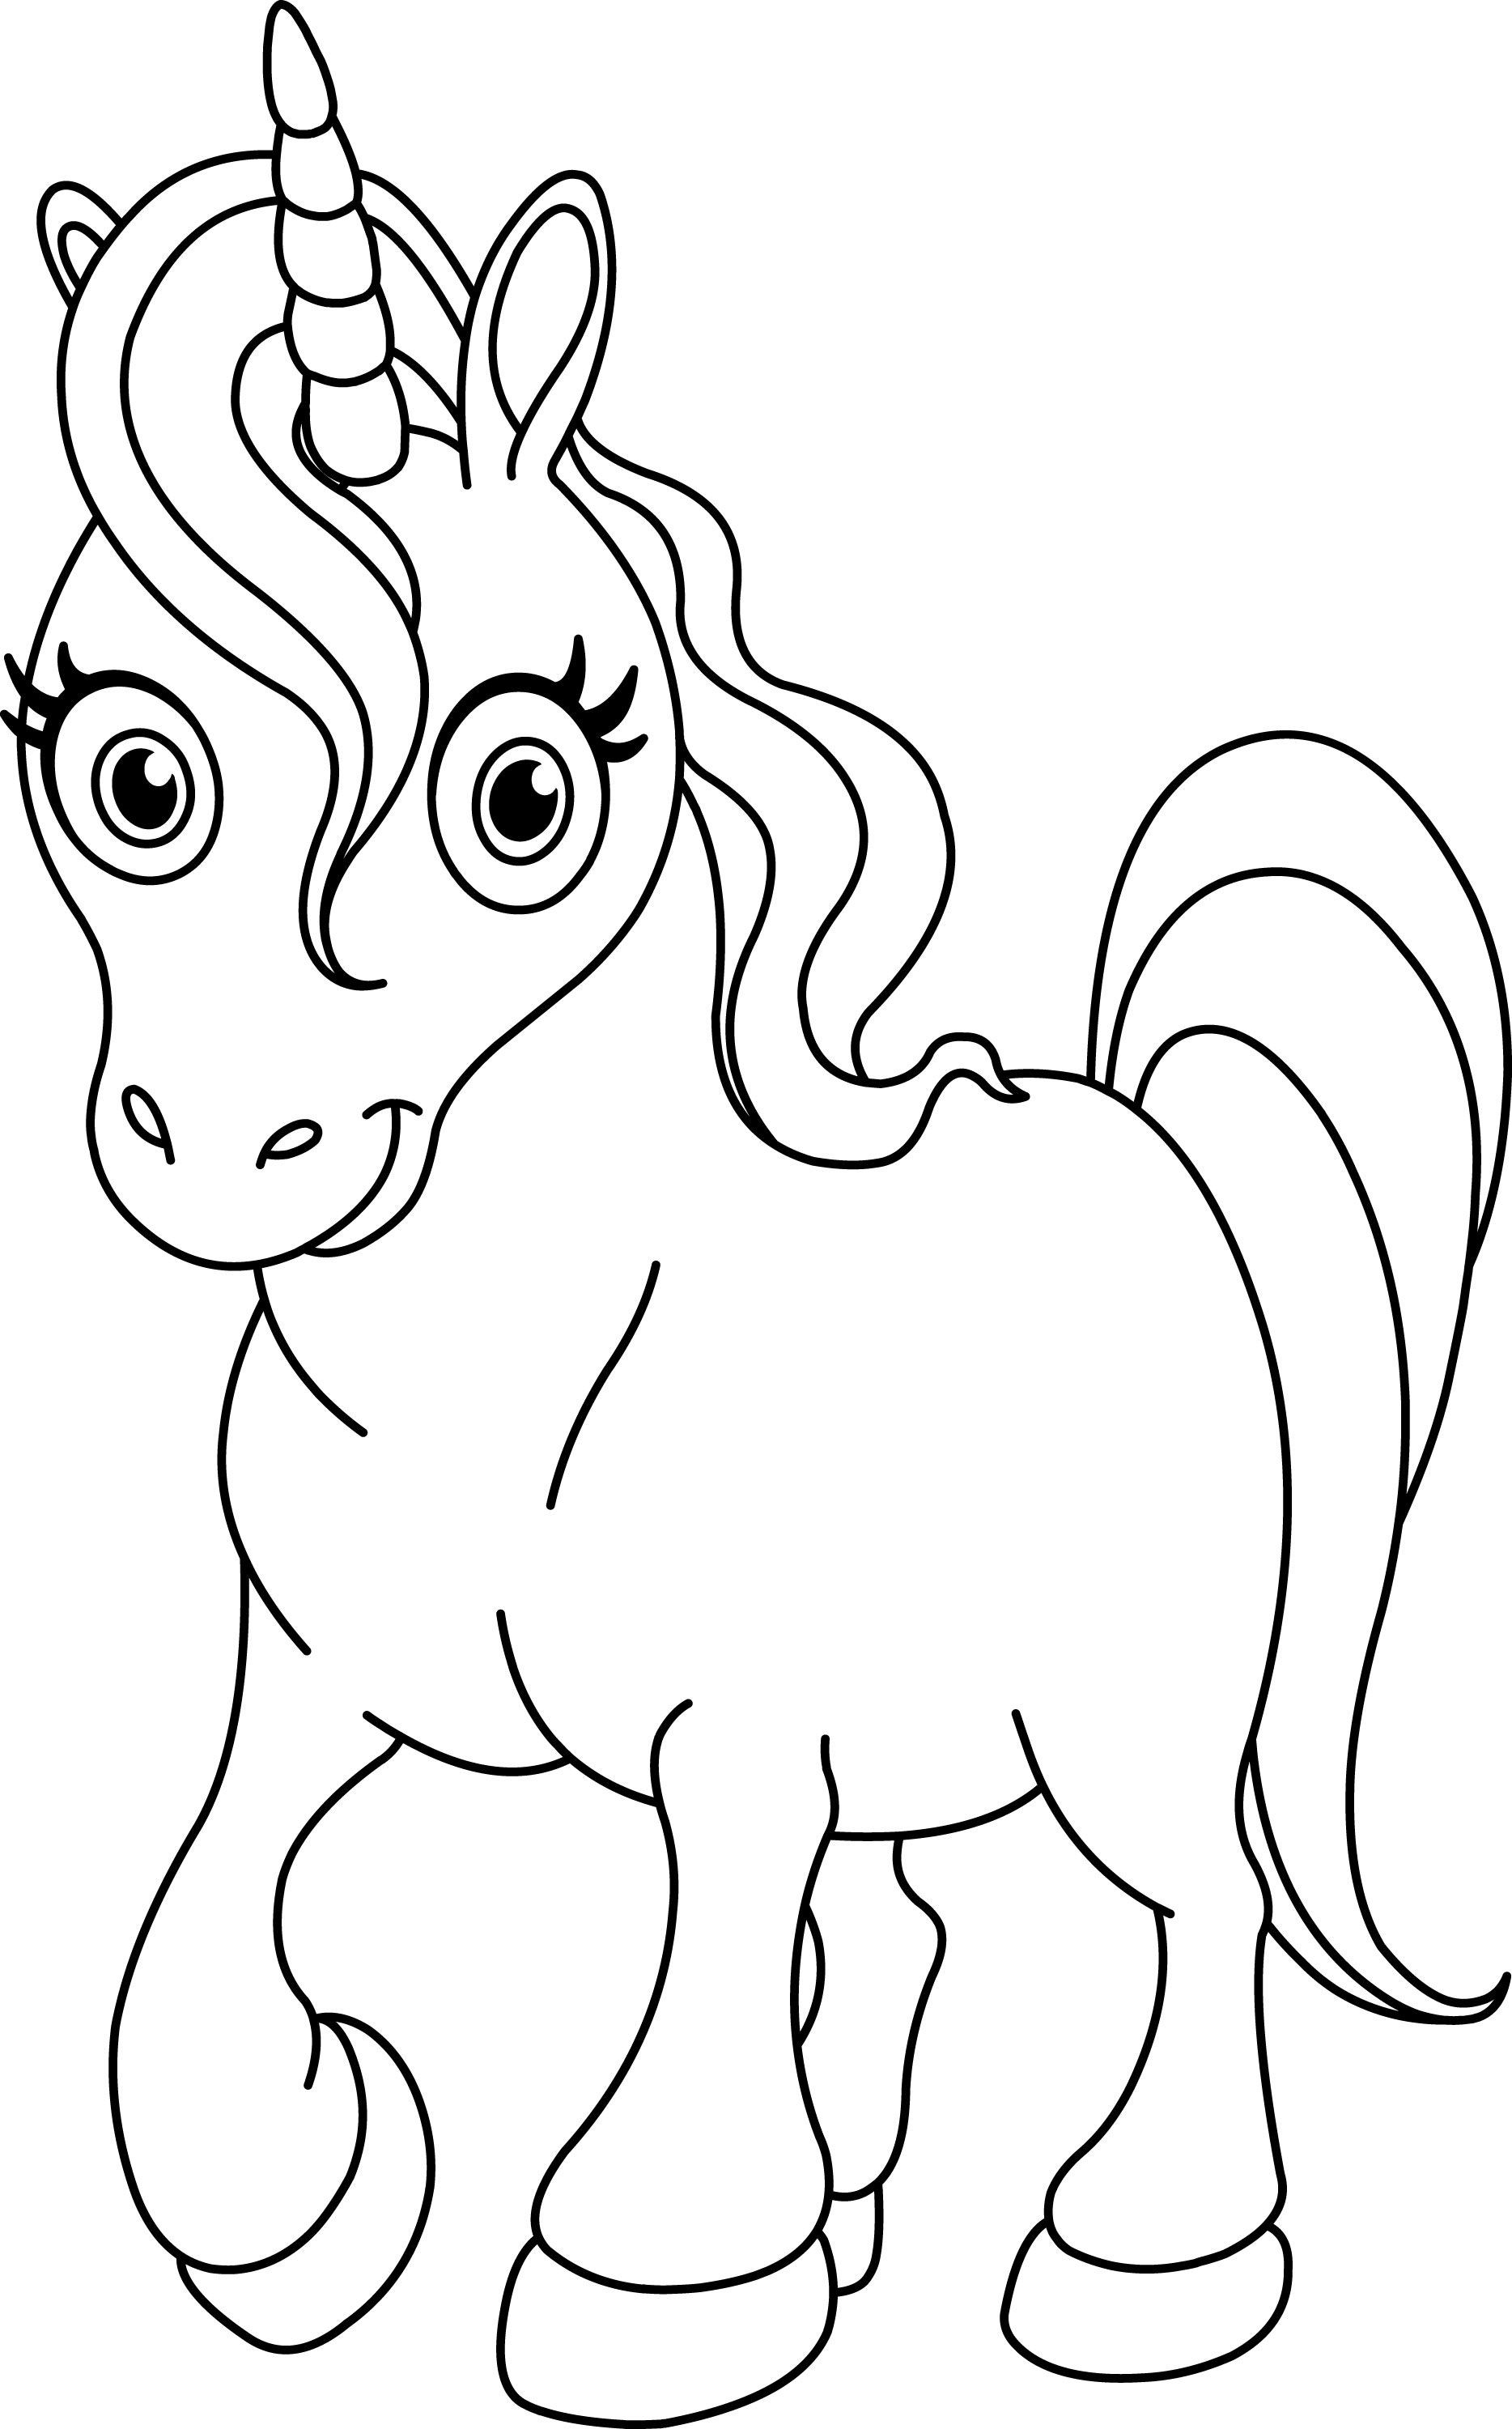 Unicorn Coloring Pages For Kids  Pay attention for this explanation to do the Unicorn